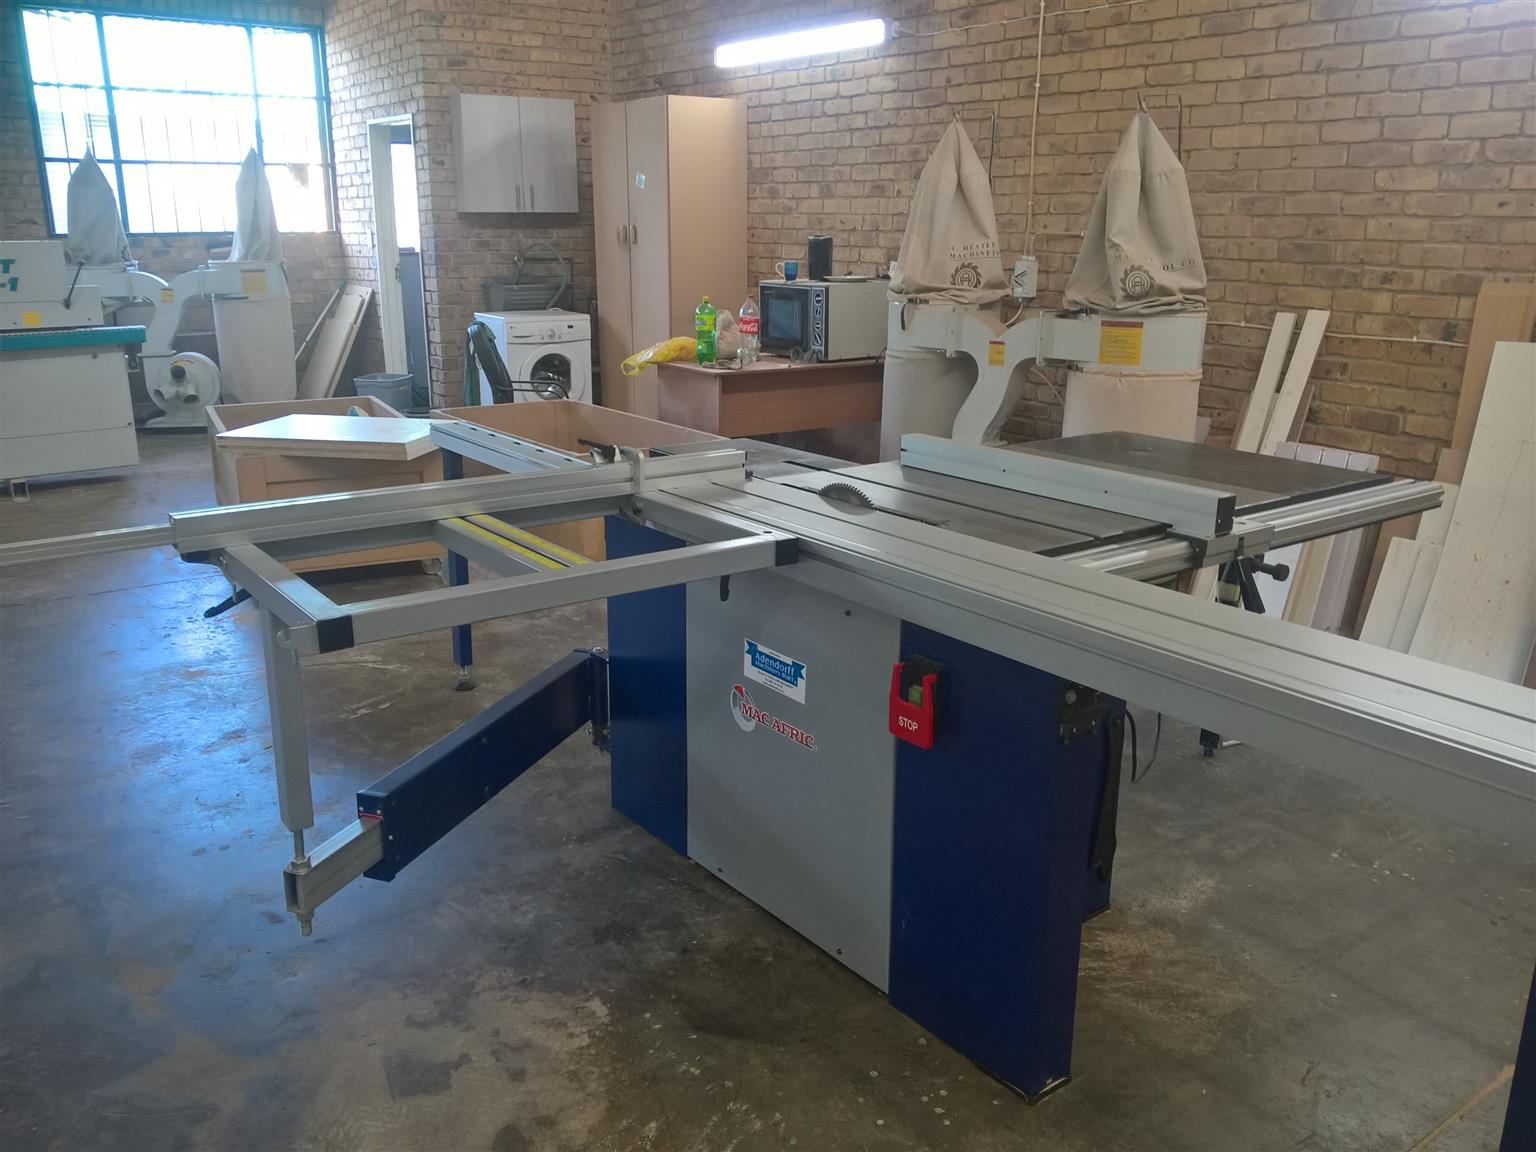 Panel Saw For Sale >> Panel Saw For Sale Macafric Model Mj12 3200 In Pristine Condition Junk Mail